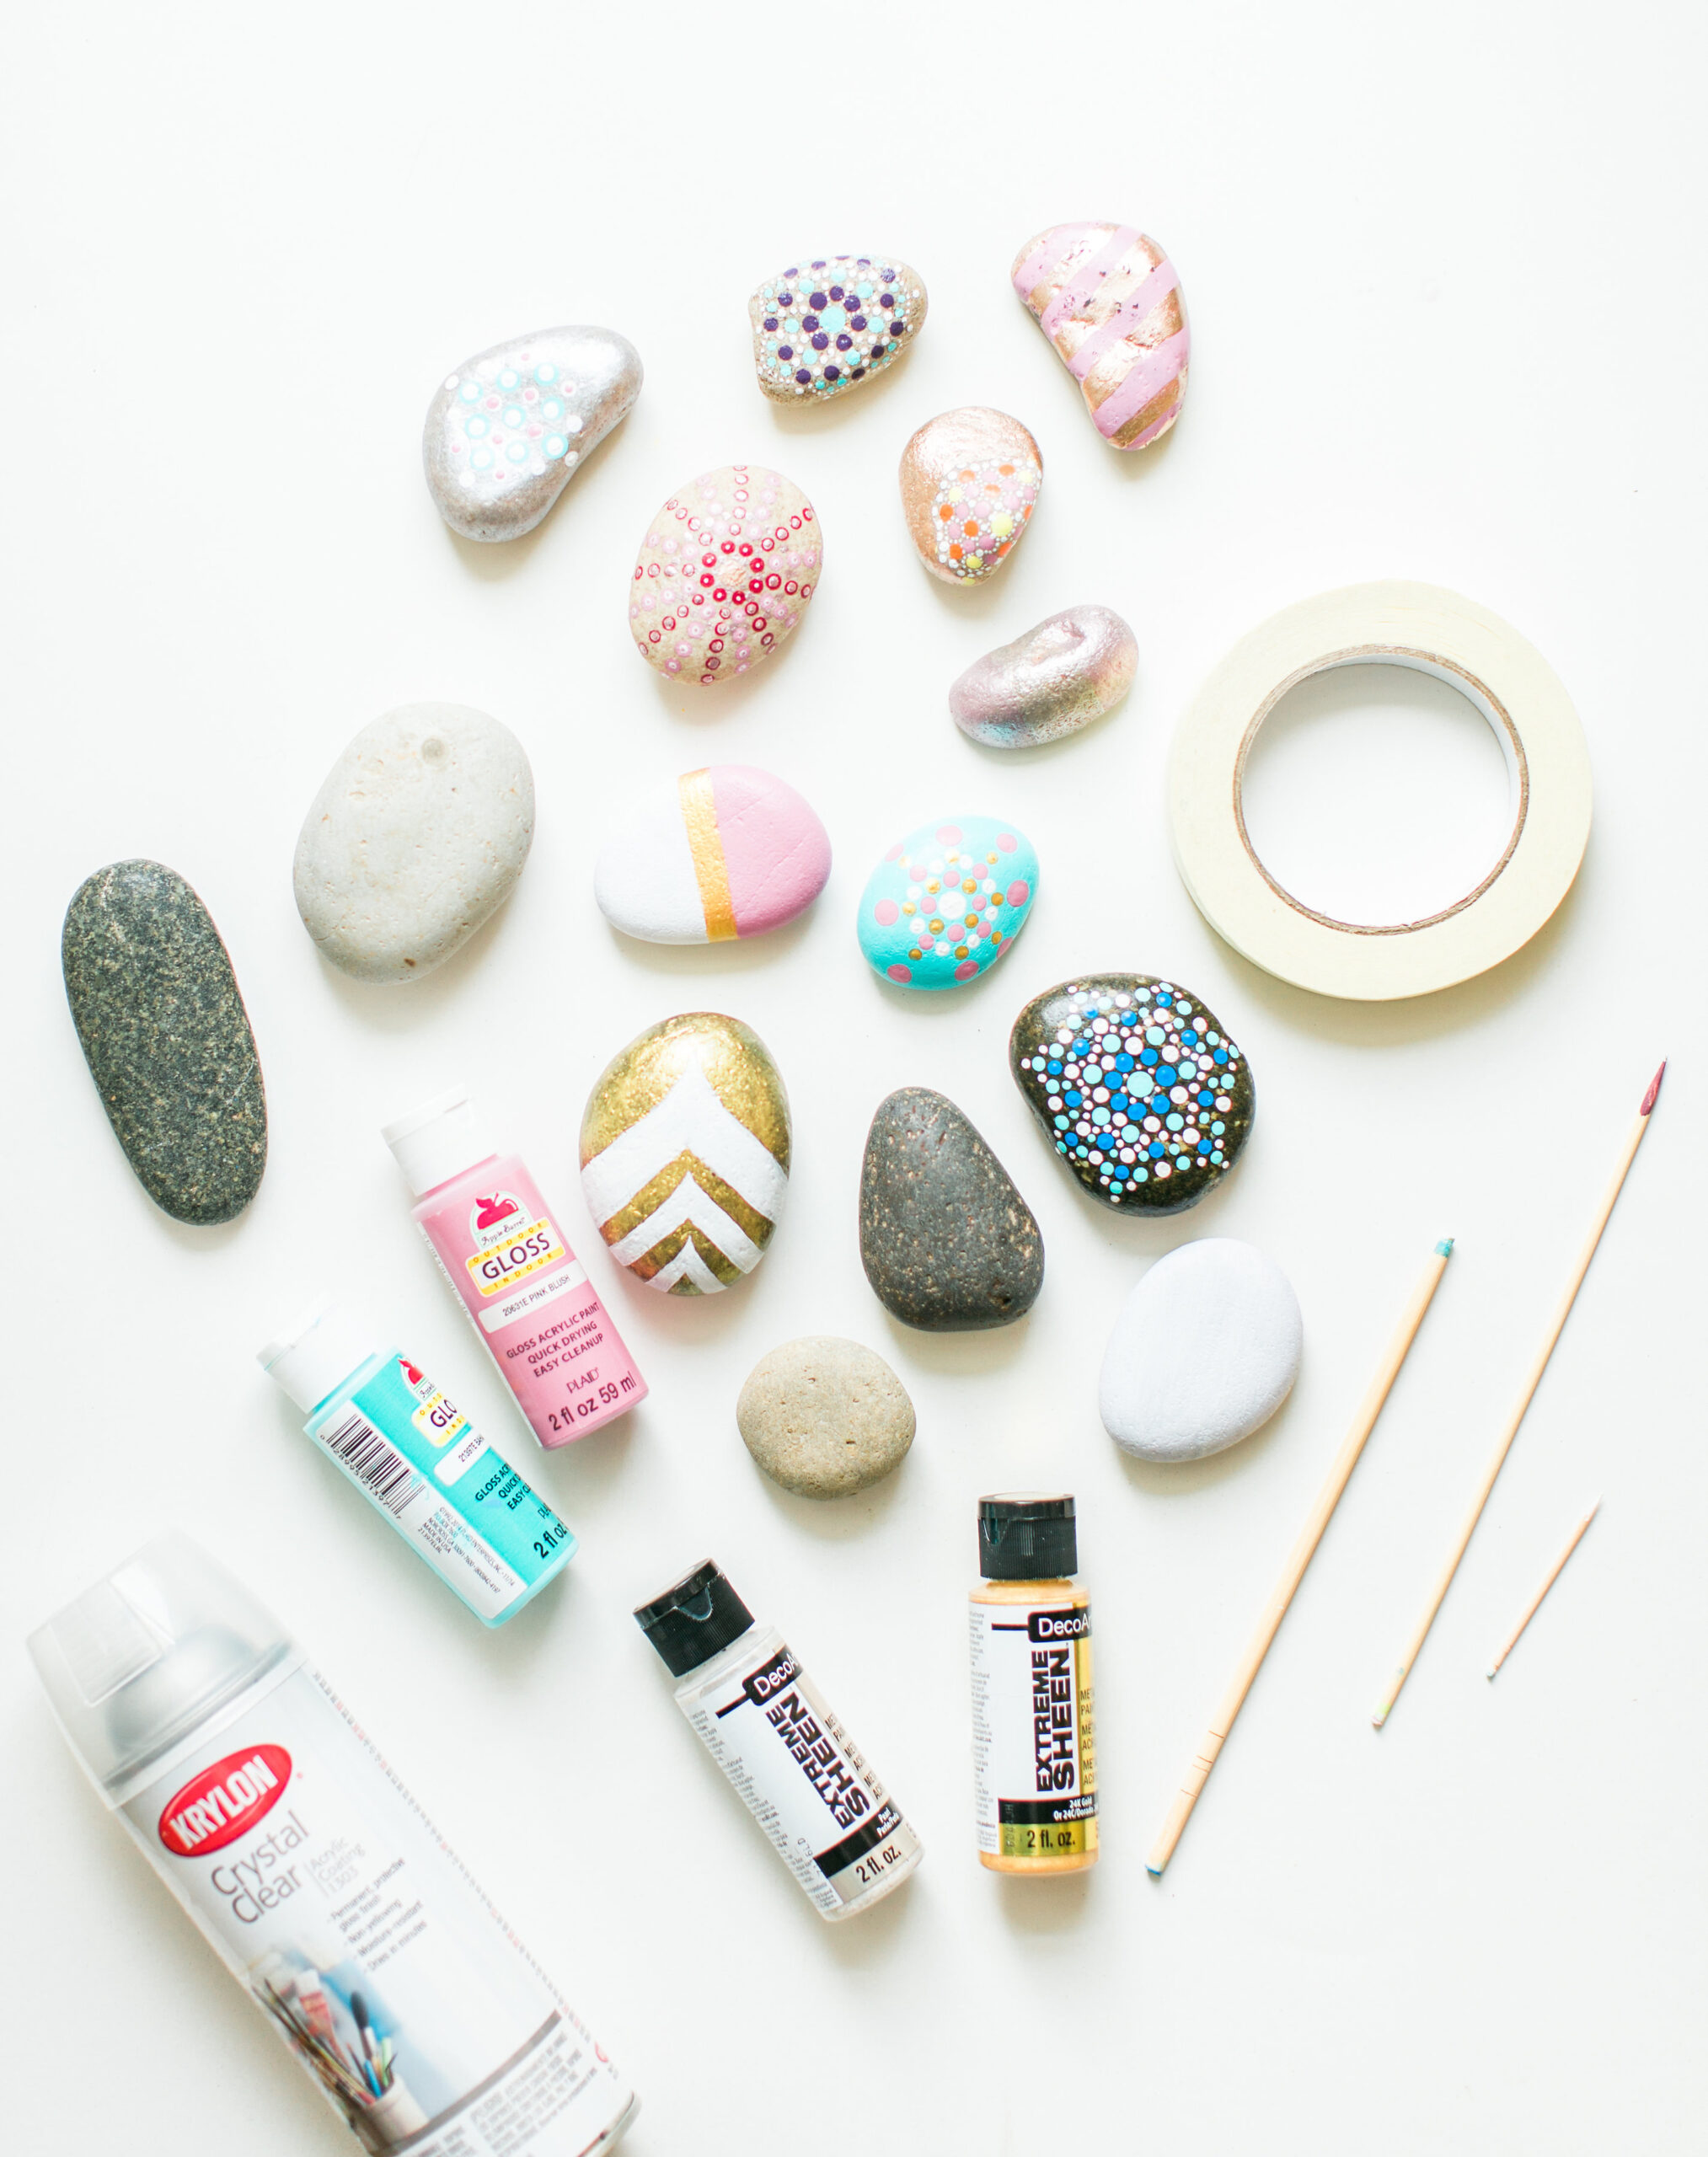 Home with your young kids? Here is a huge list of fun and educational activities to do at home with young kids, including exactly how to entertain your children during school closures, cold and flu days, Spring and Summer vacation breaks, and more. | glitterinc.com | @glitterinc // DIY Painted Rocks